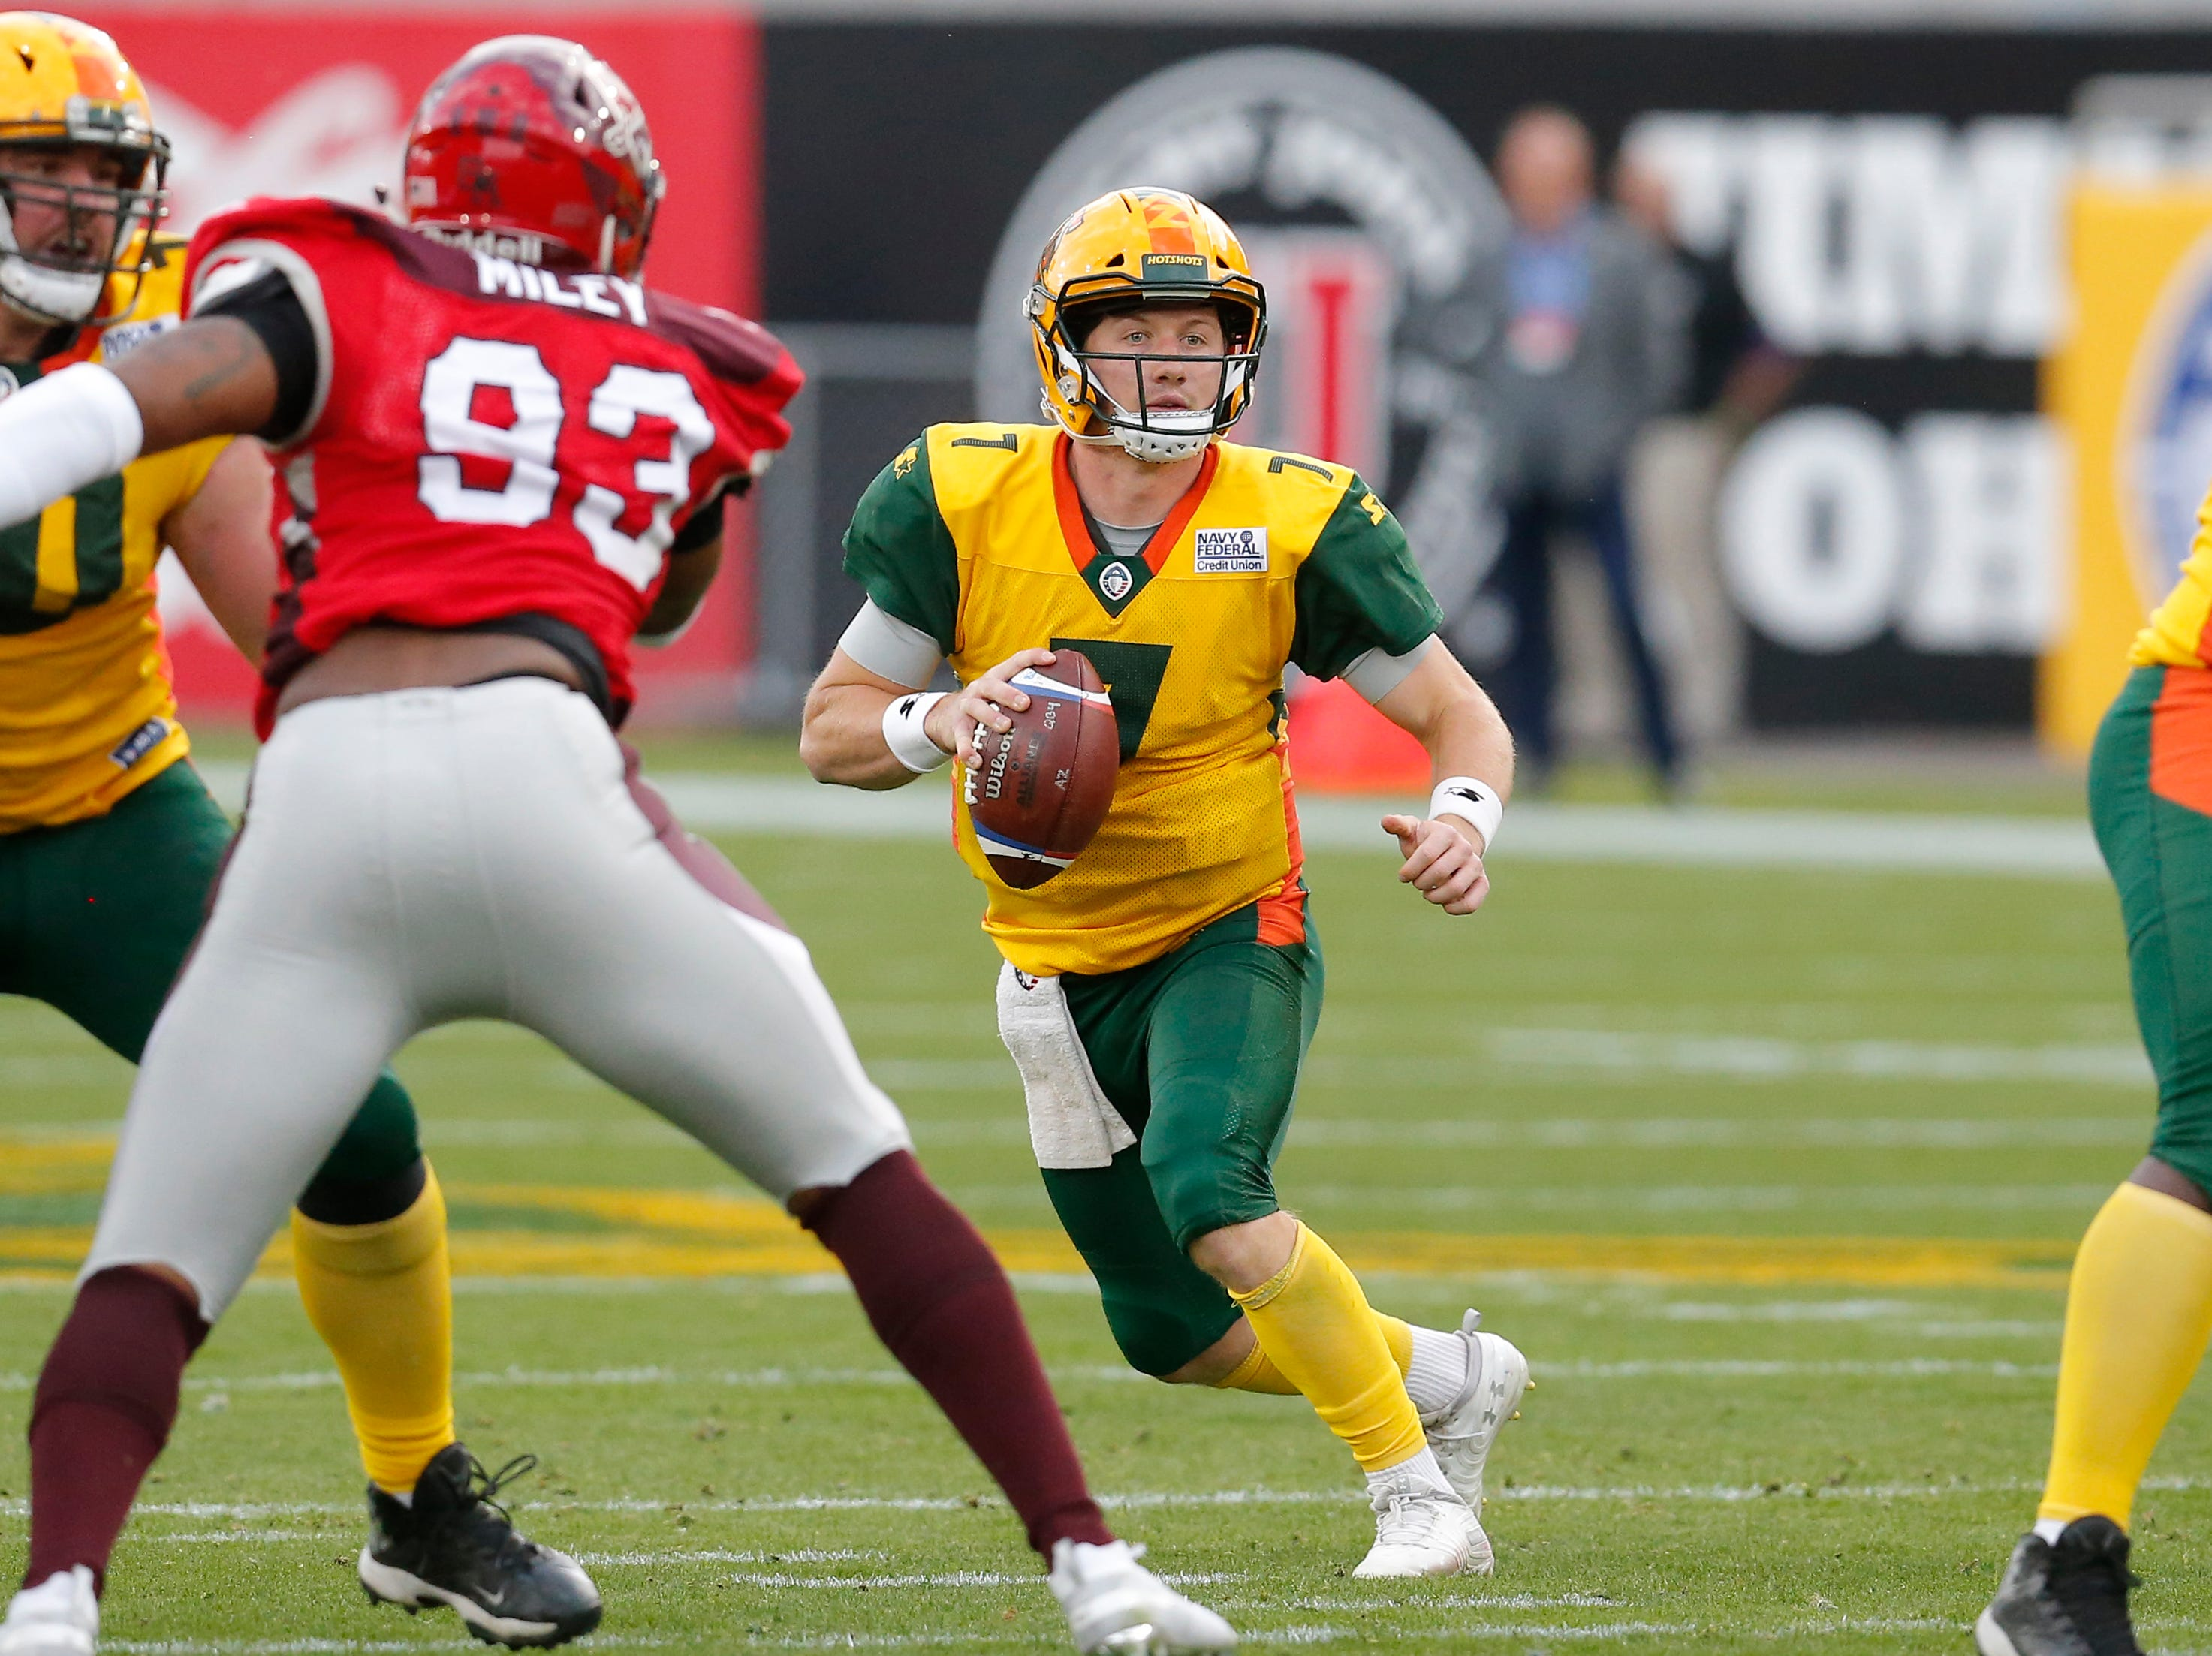 Arizona Hotshots quarterback John Wolford (7) looks down field against the San Antonio Commanders in the first half during an AAF football game, Sunday, March 10, 2019, at Sun Devil Stadium in Phoenix. (AP Photo/Rick Scuteri)